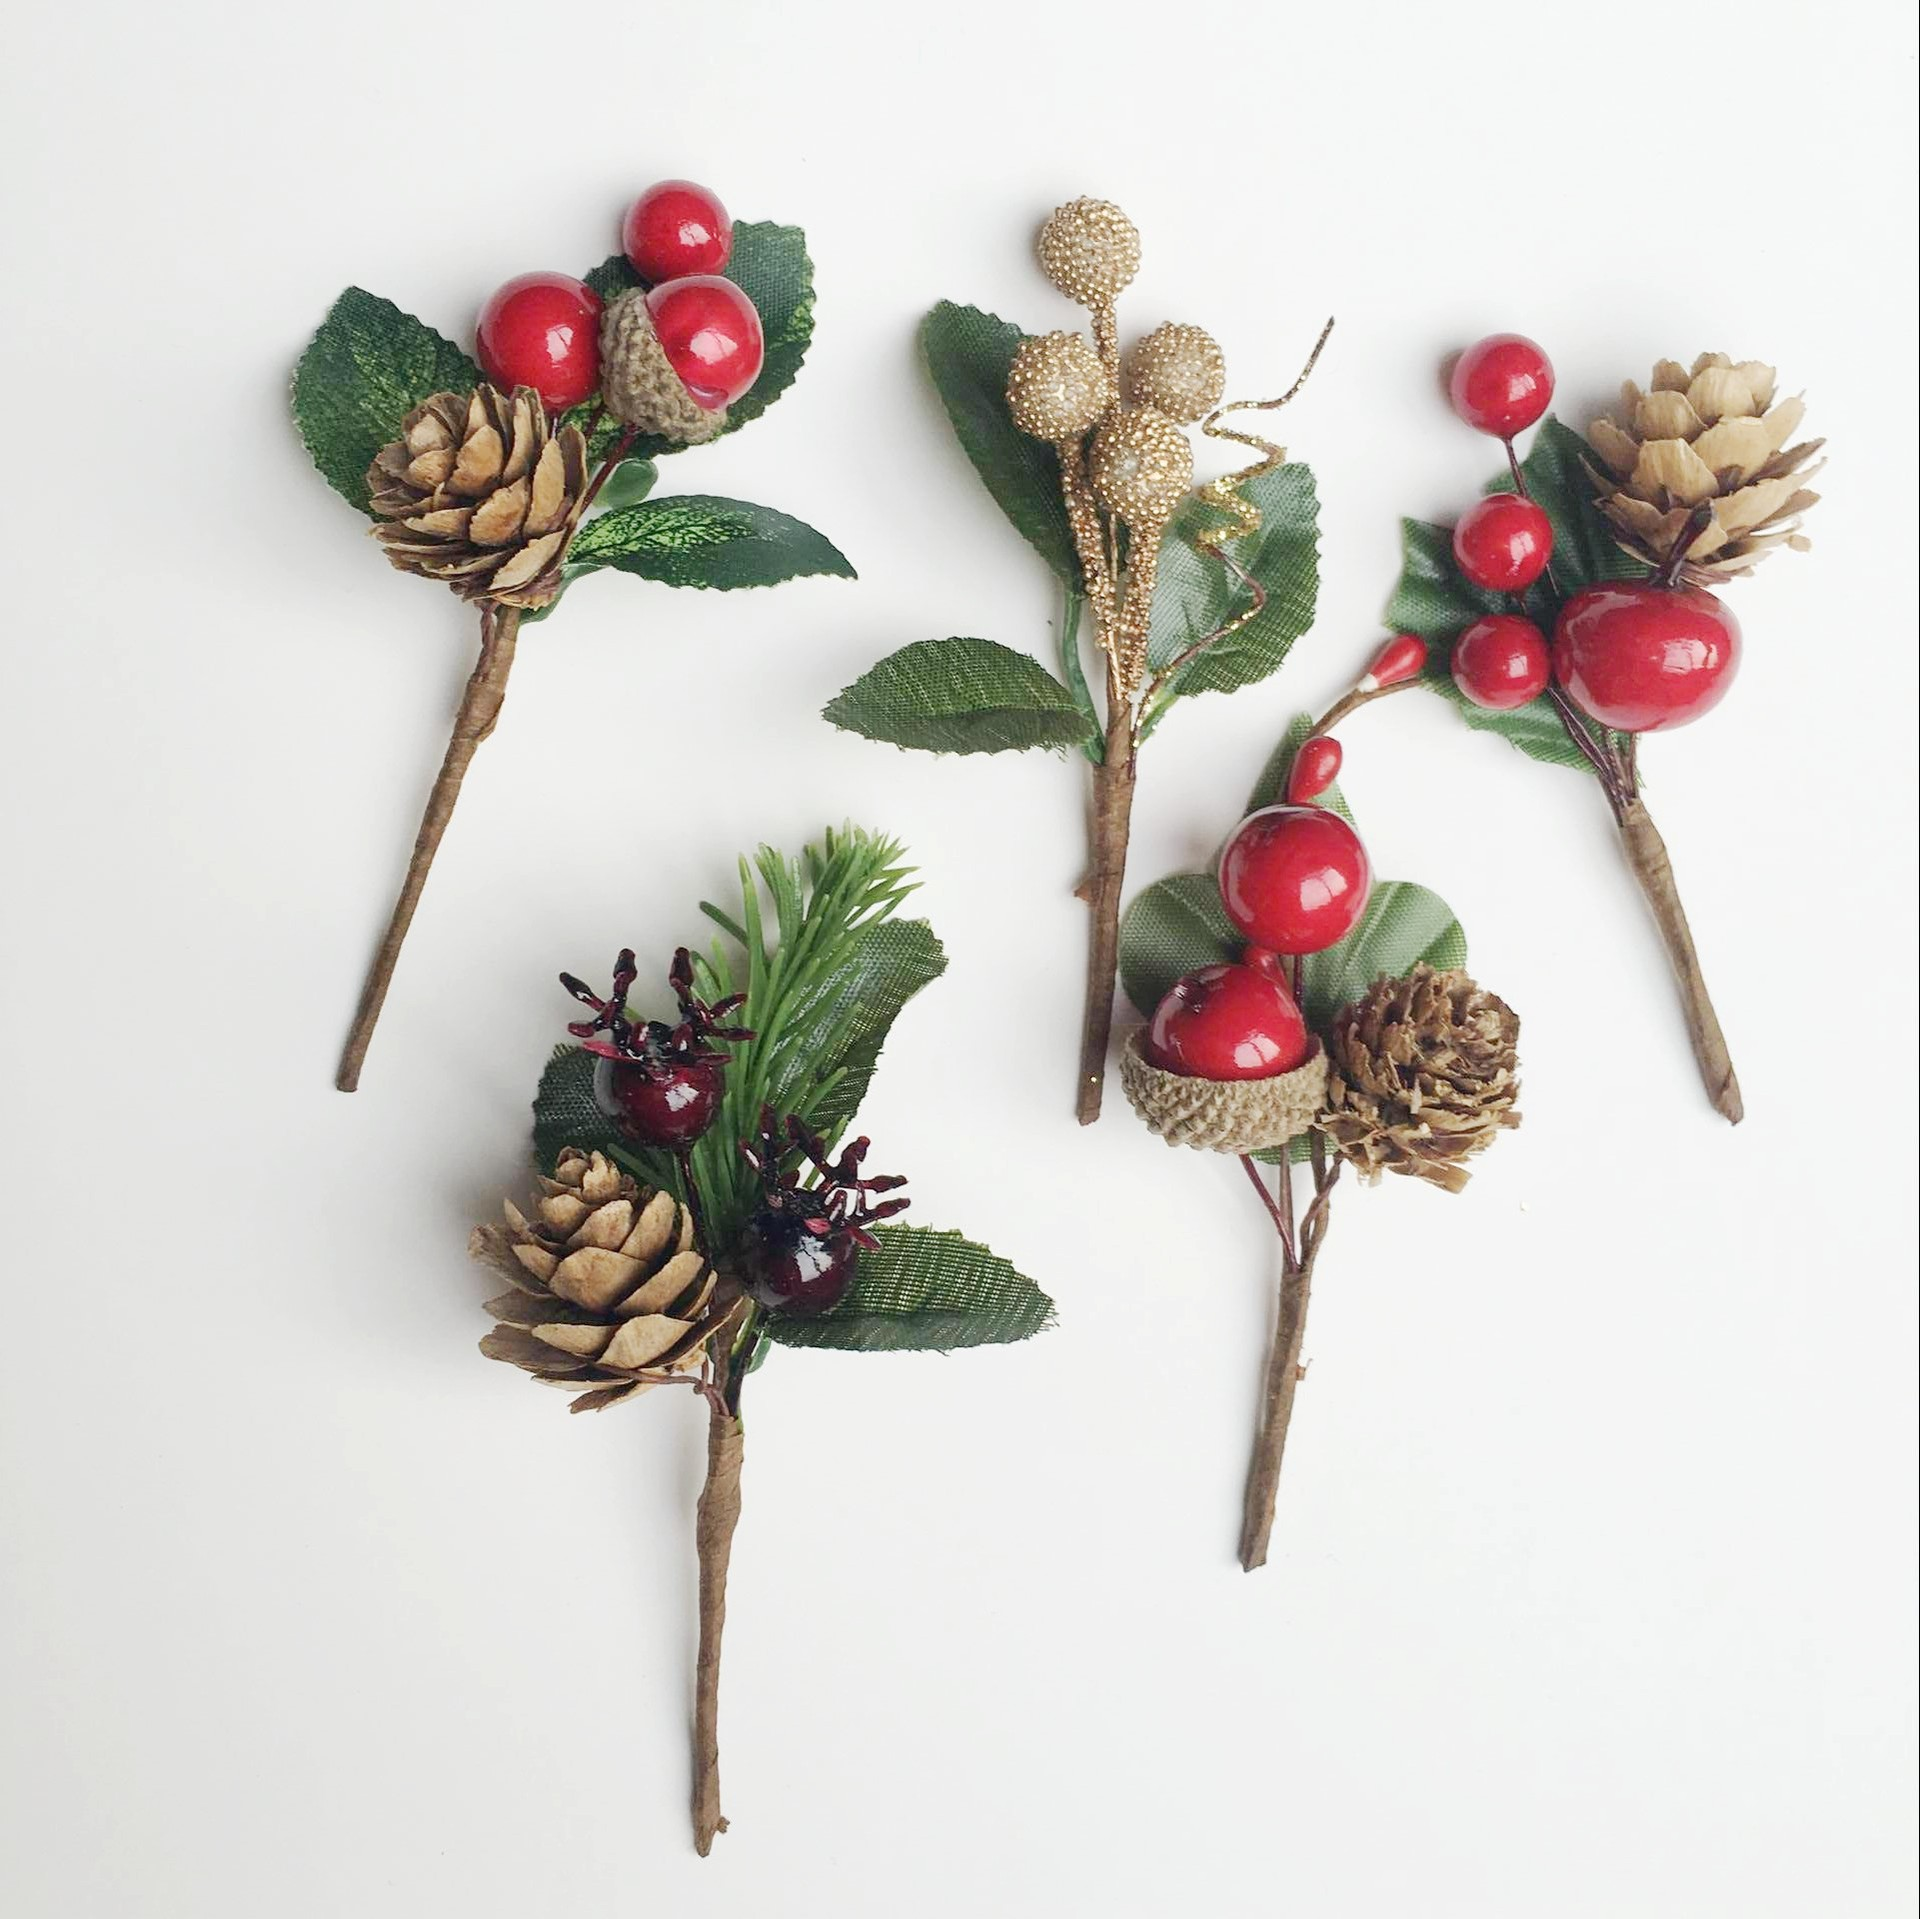 5pcs Artificial Flower Red <font><b>Christmas</b></font> Berry And Pine Cone Picks With Holly Branches For Holiday Floral Decor Flower Crafts image